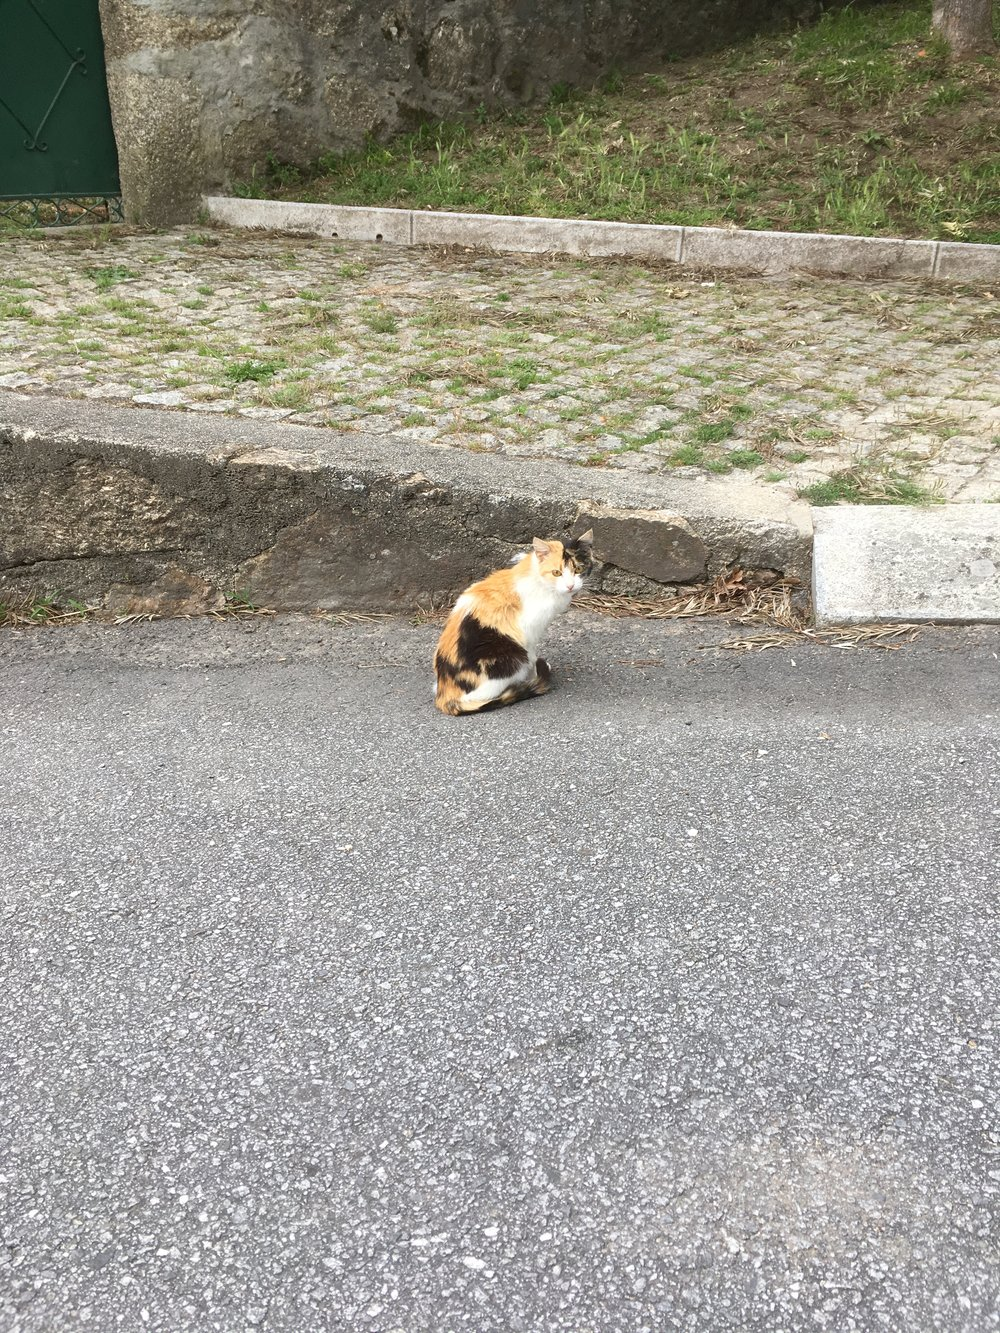 One of the many cats I saw along the way of the Camino